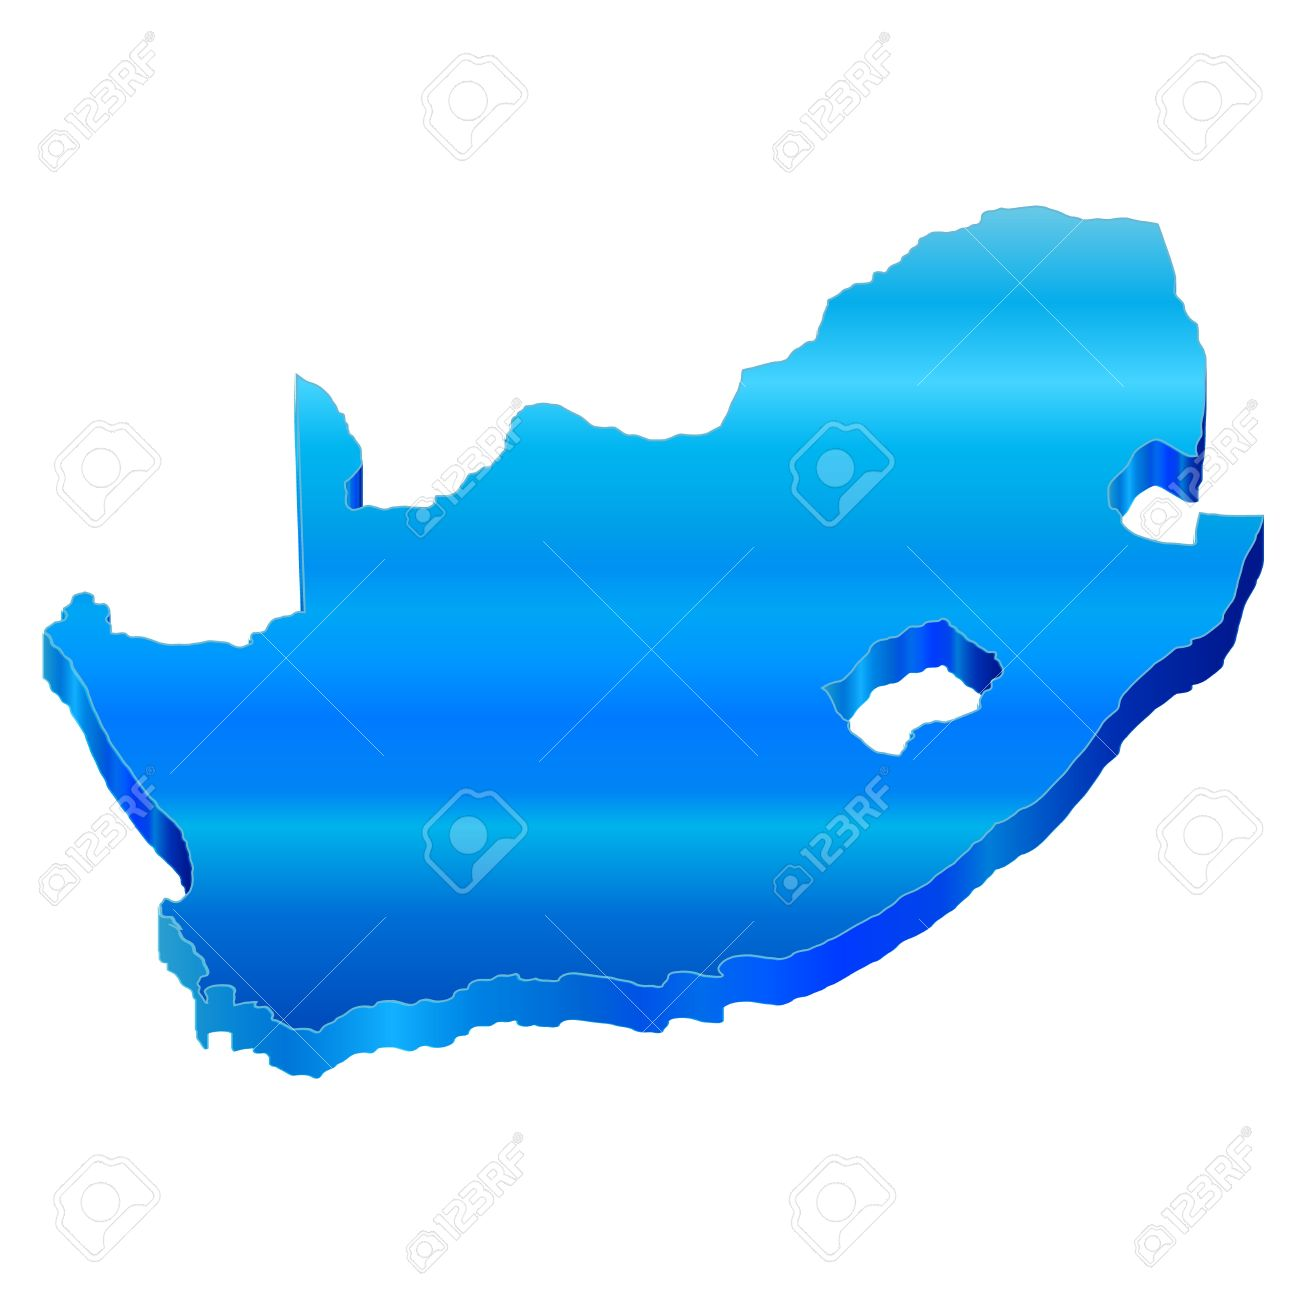 3D Map Of South Africa Royalty Free Cliparts, Vectors, And Stock